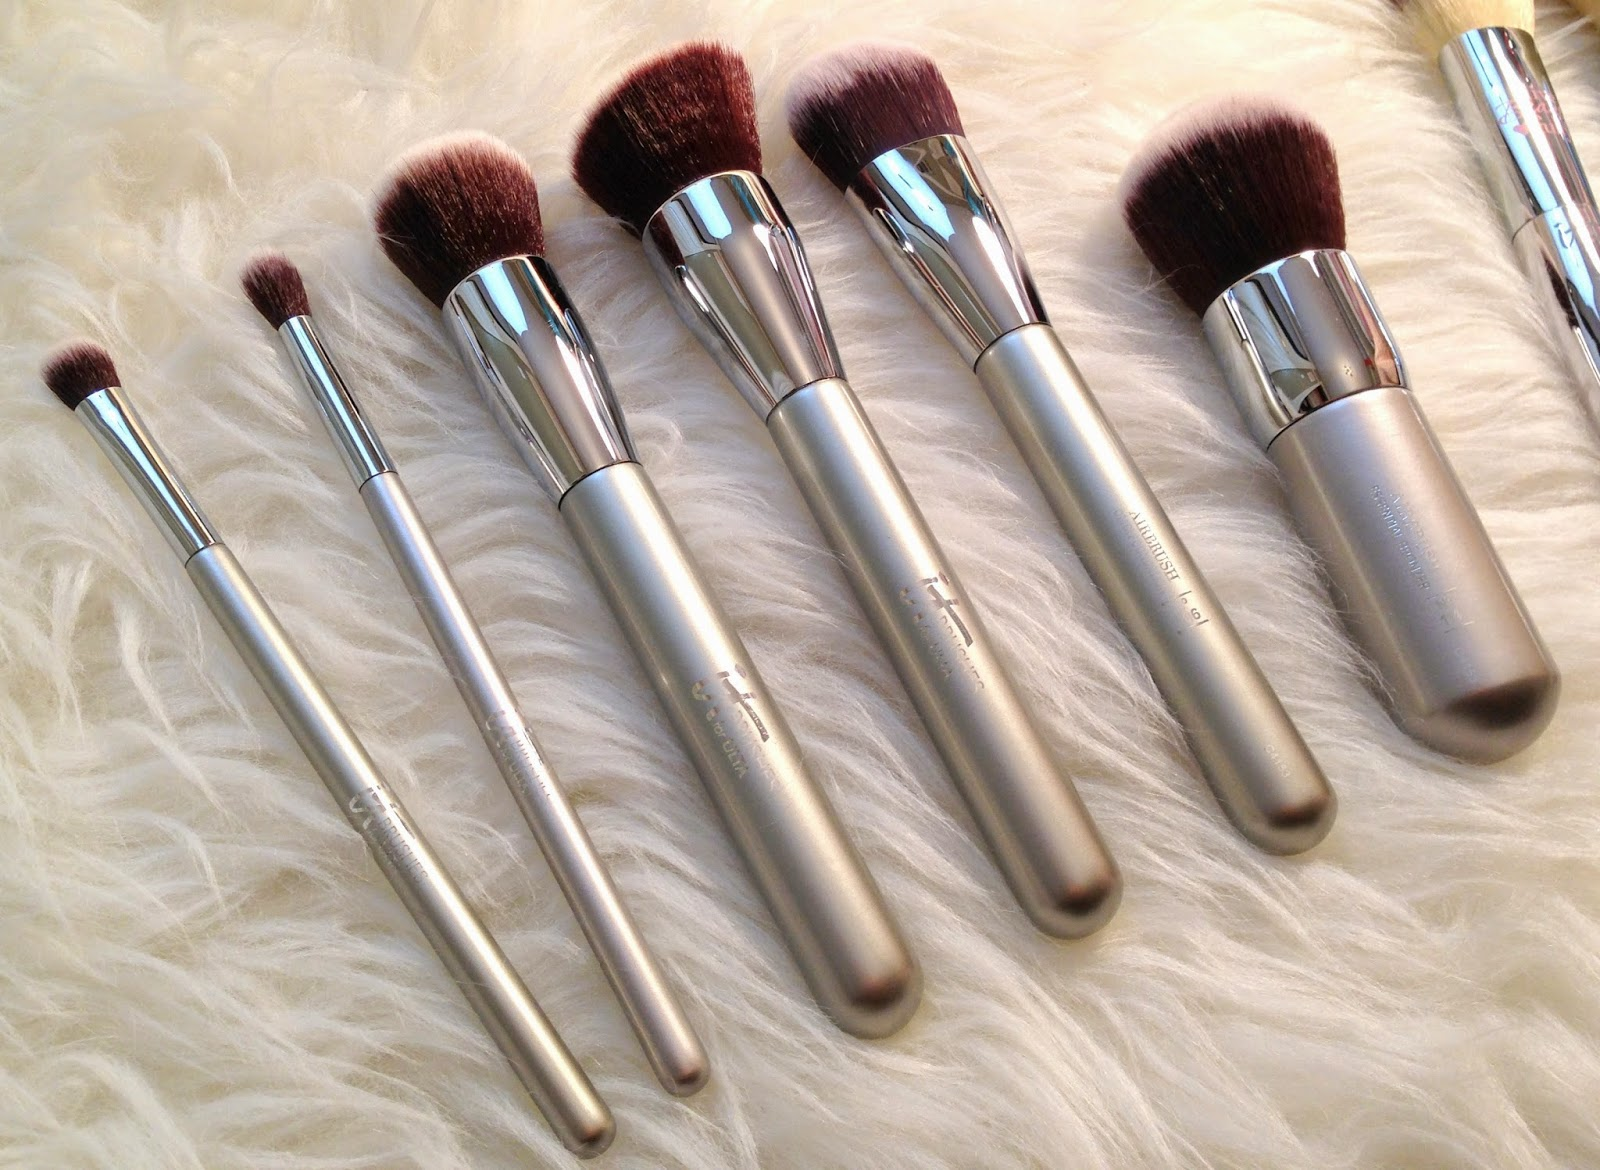 It Cosmetics x ULTA Airbrush Complexion Perfection Brush #115 by IT Cosmetics #6